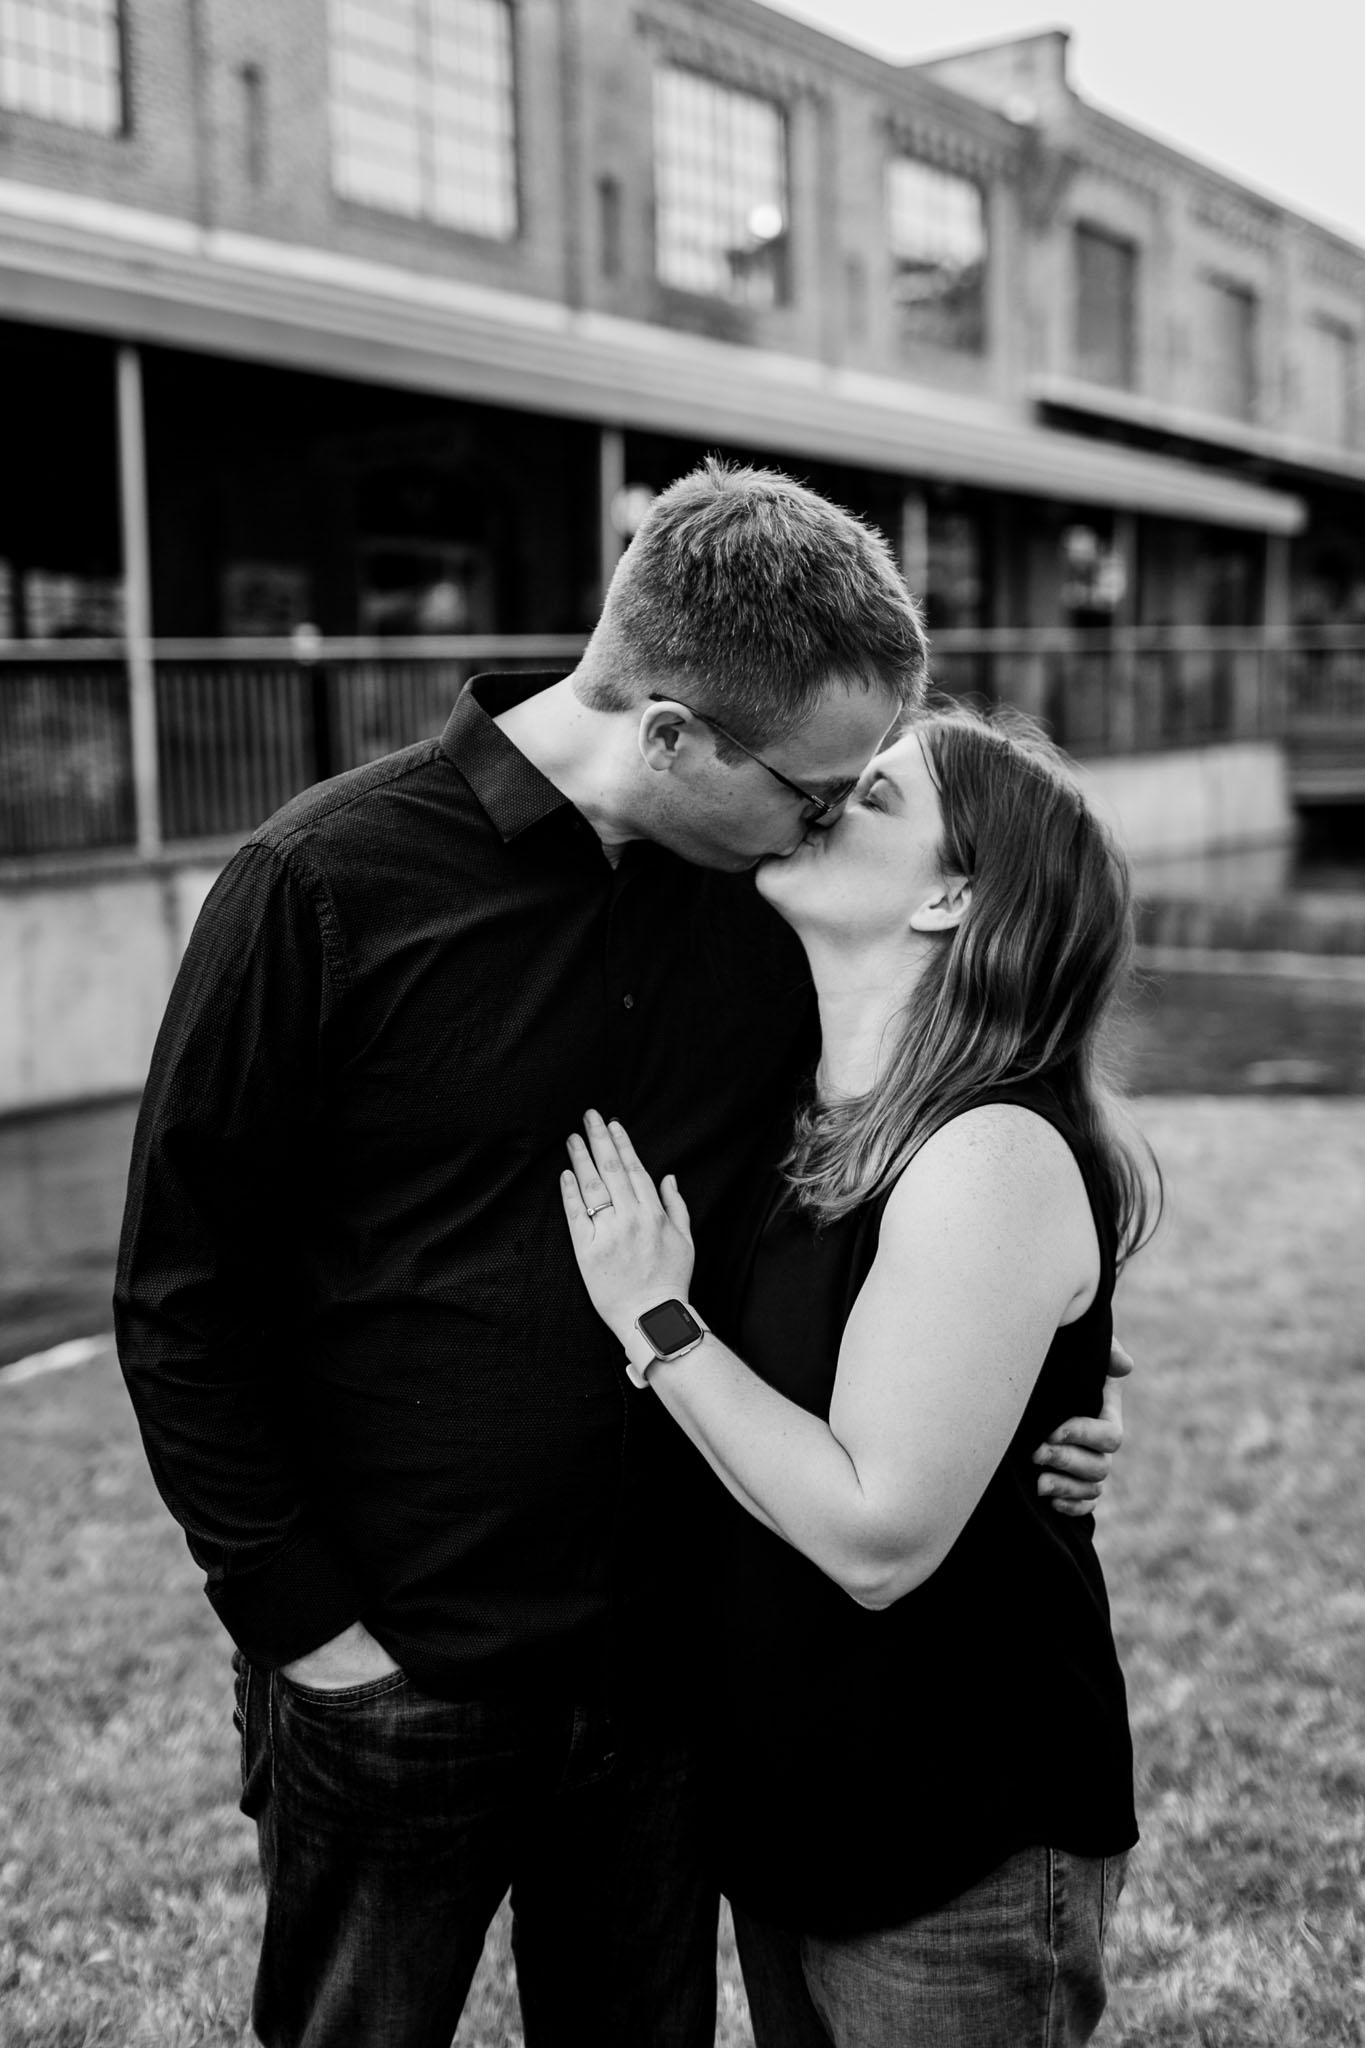 Durham Photographer | Black and white photo of couple kissing | American Tobacco Campus | By G. Lin Photography